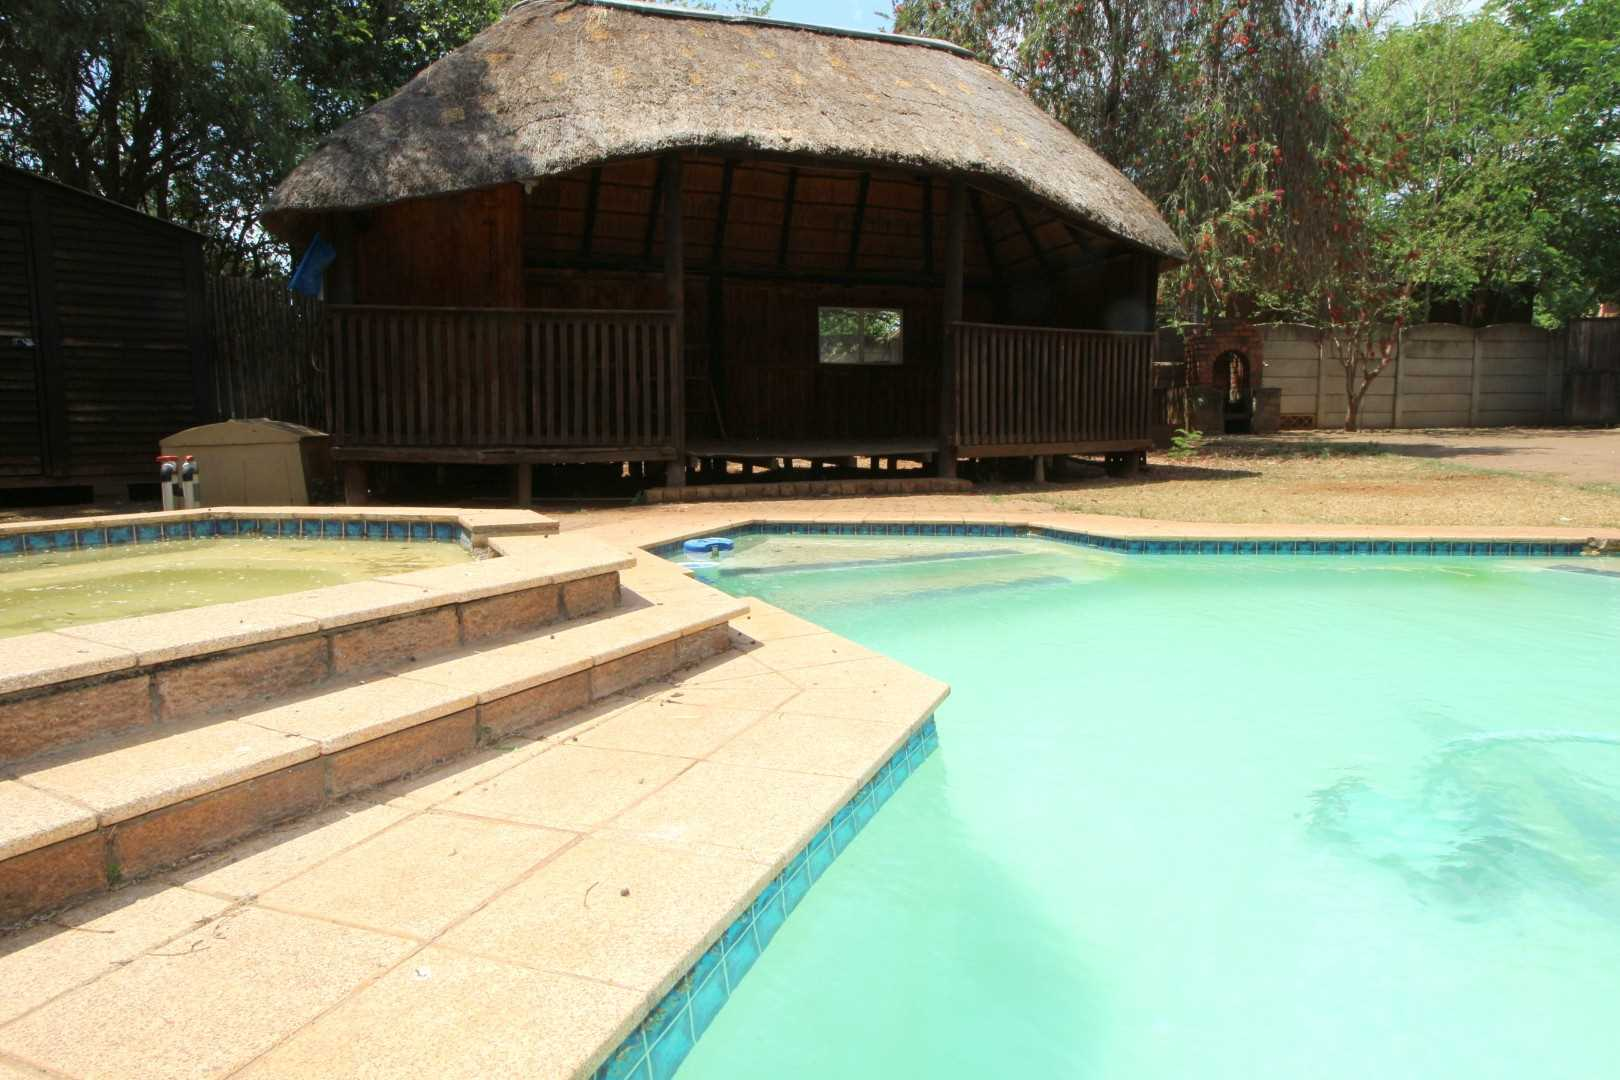 Pool and wooden lapa